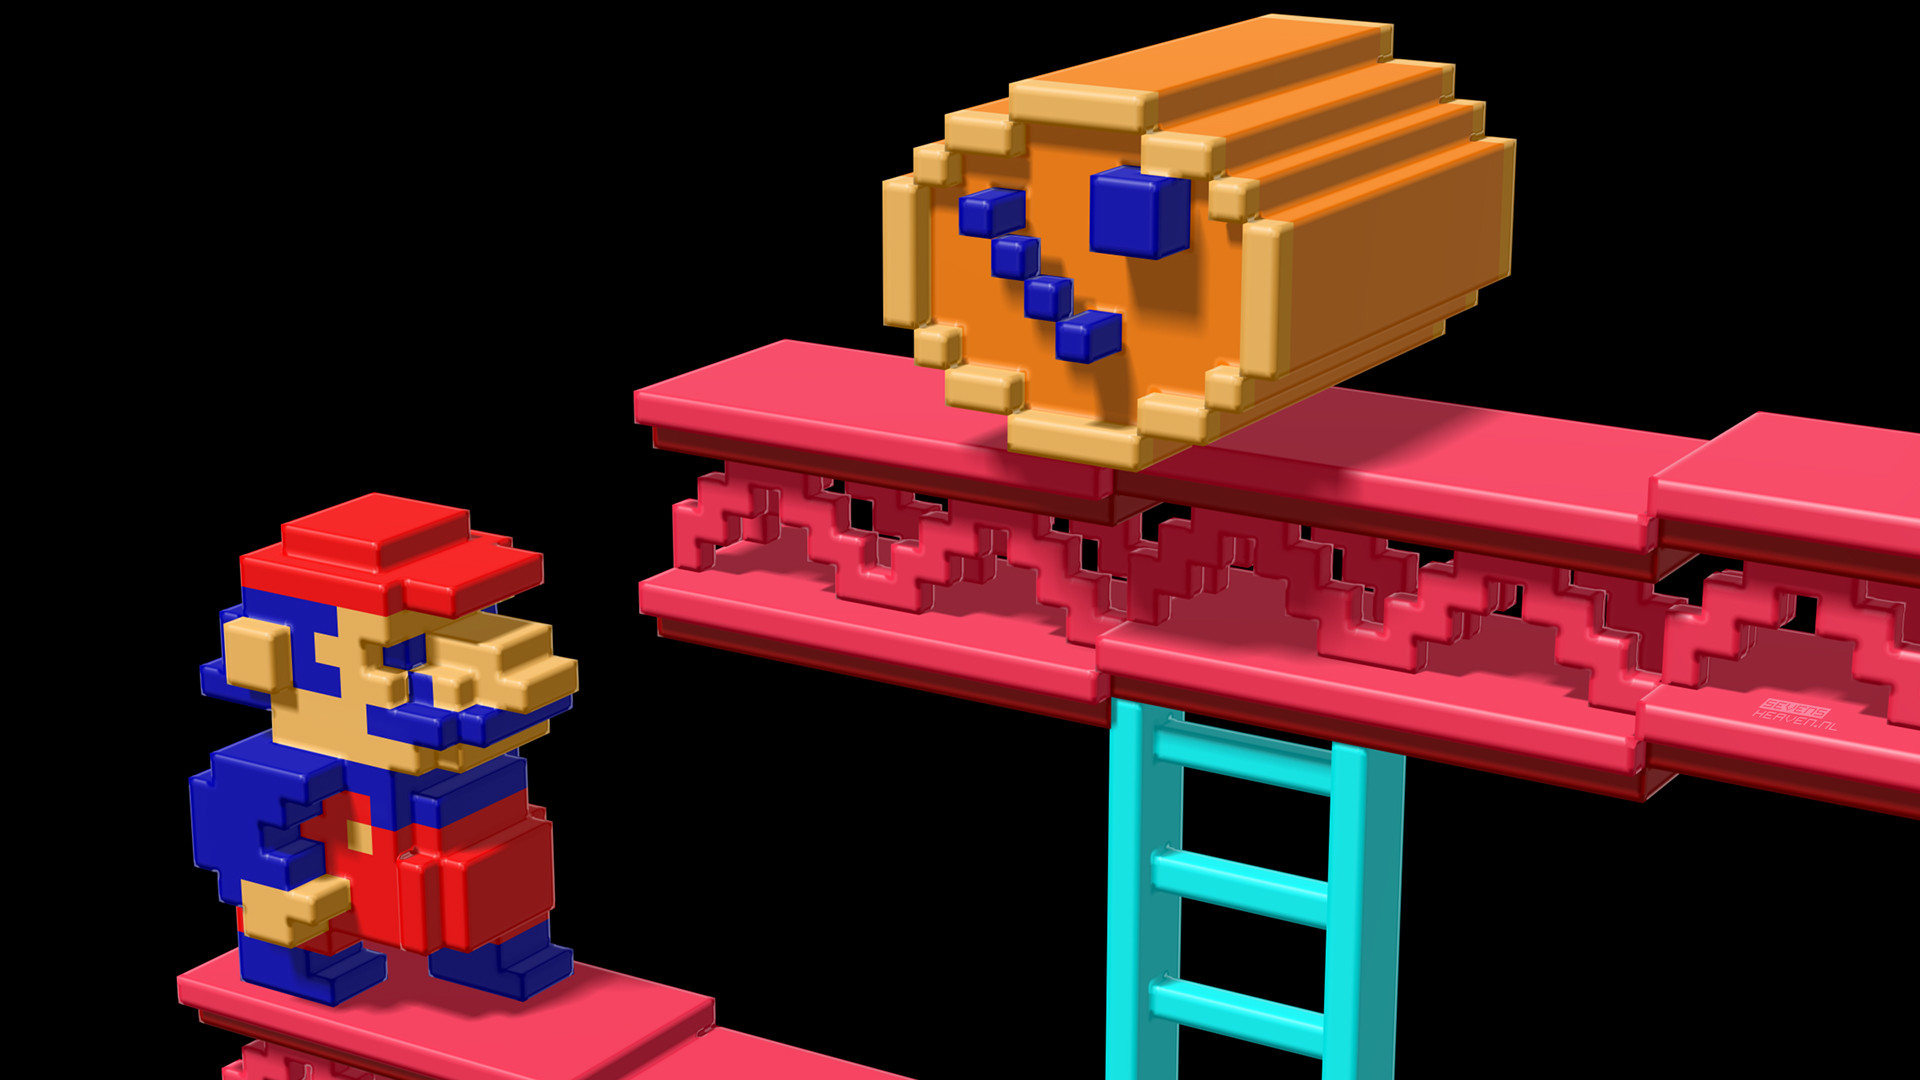 Retro 3D Mario Video Game Desktop Wallpaper